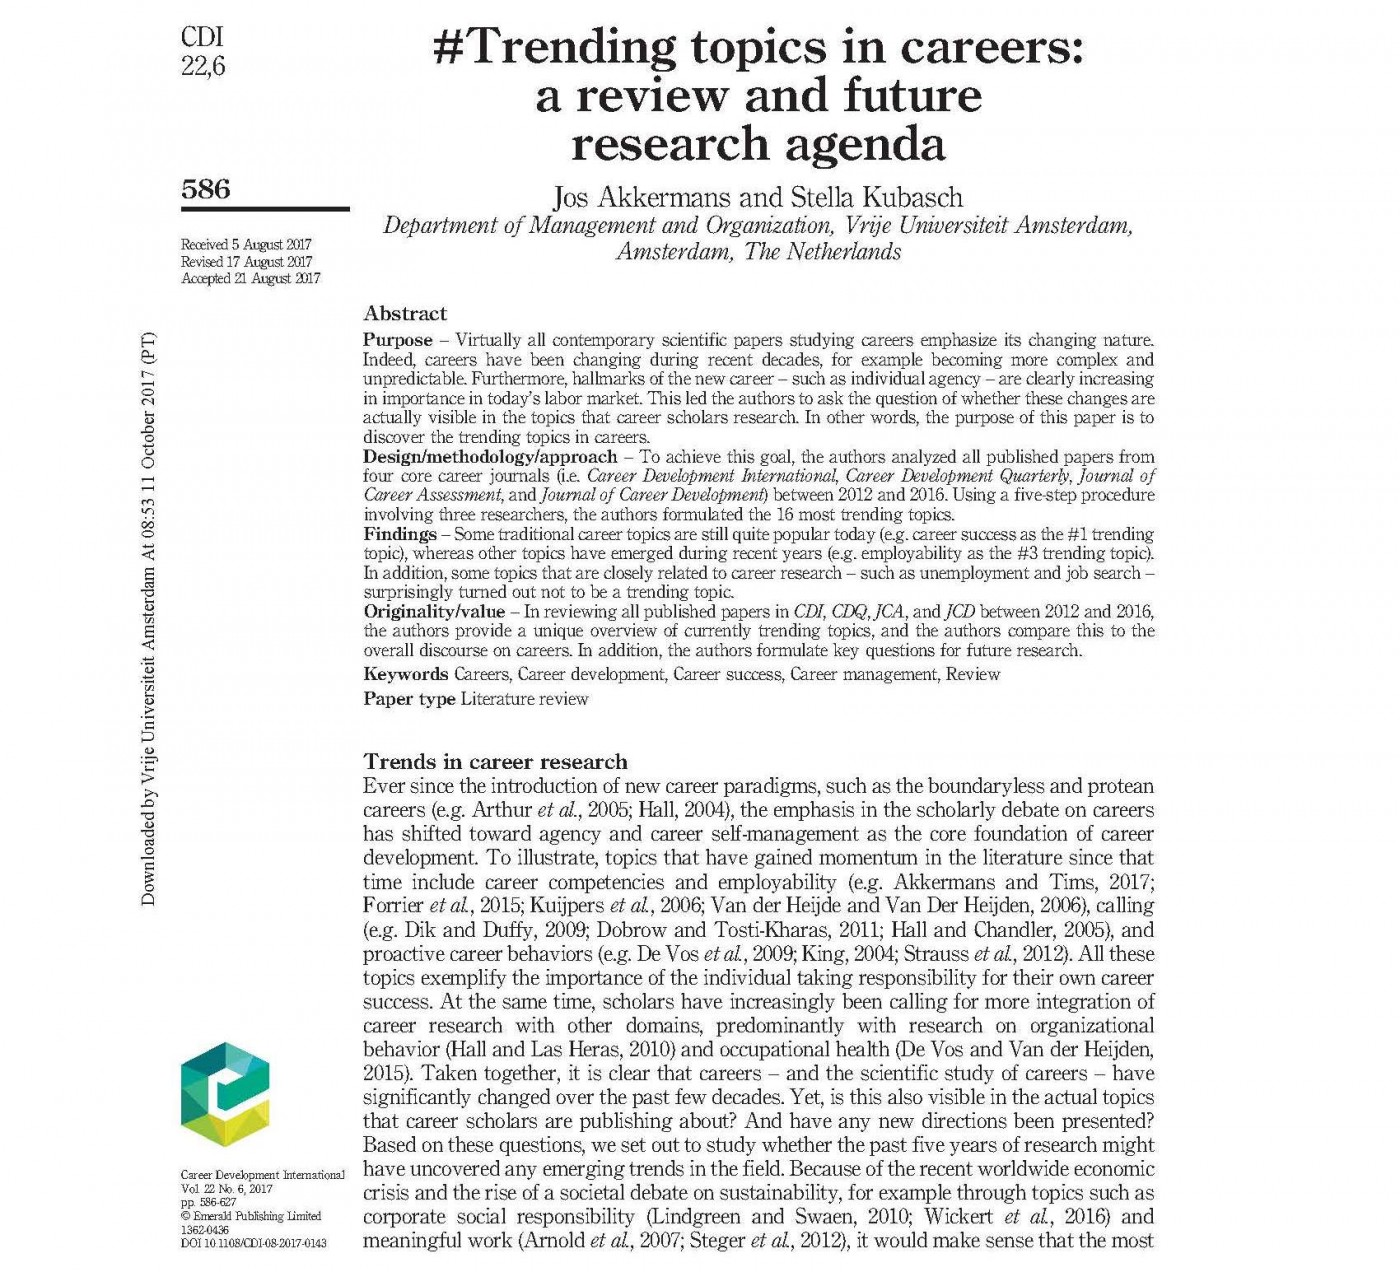 022 59e096d33a29650001209782 1620 20akkermans202620kubasch20201720 20trending20topics20in20careers Research Paper Topics For Impressive Papers In Educational Management Psychology High School Students College 1400